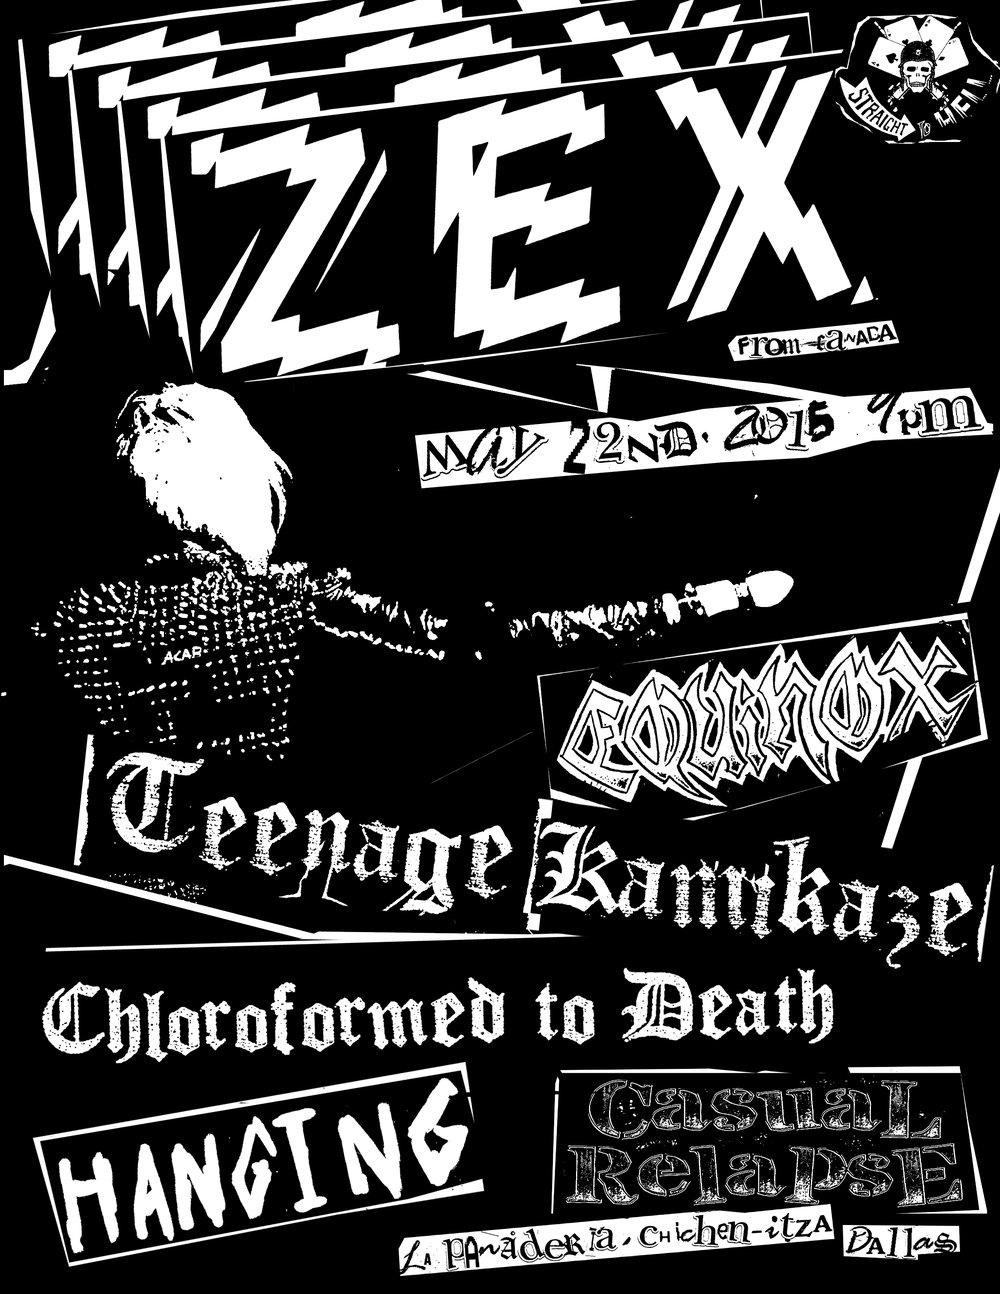 flyer-15.05.22-dallas-zex.jpg